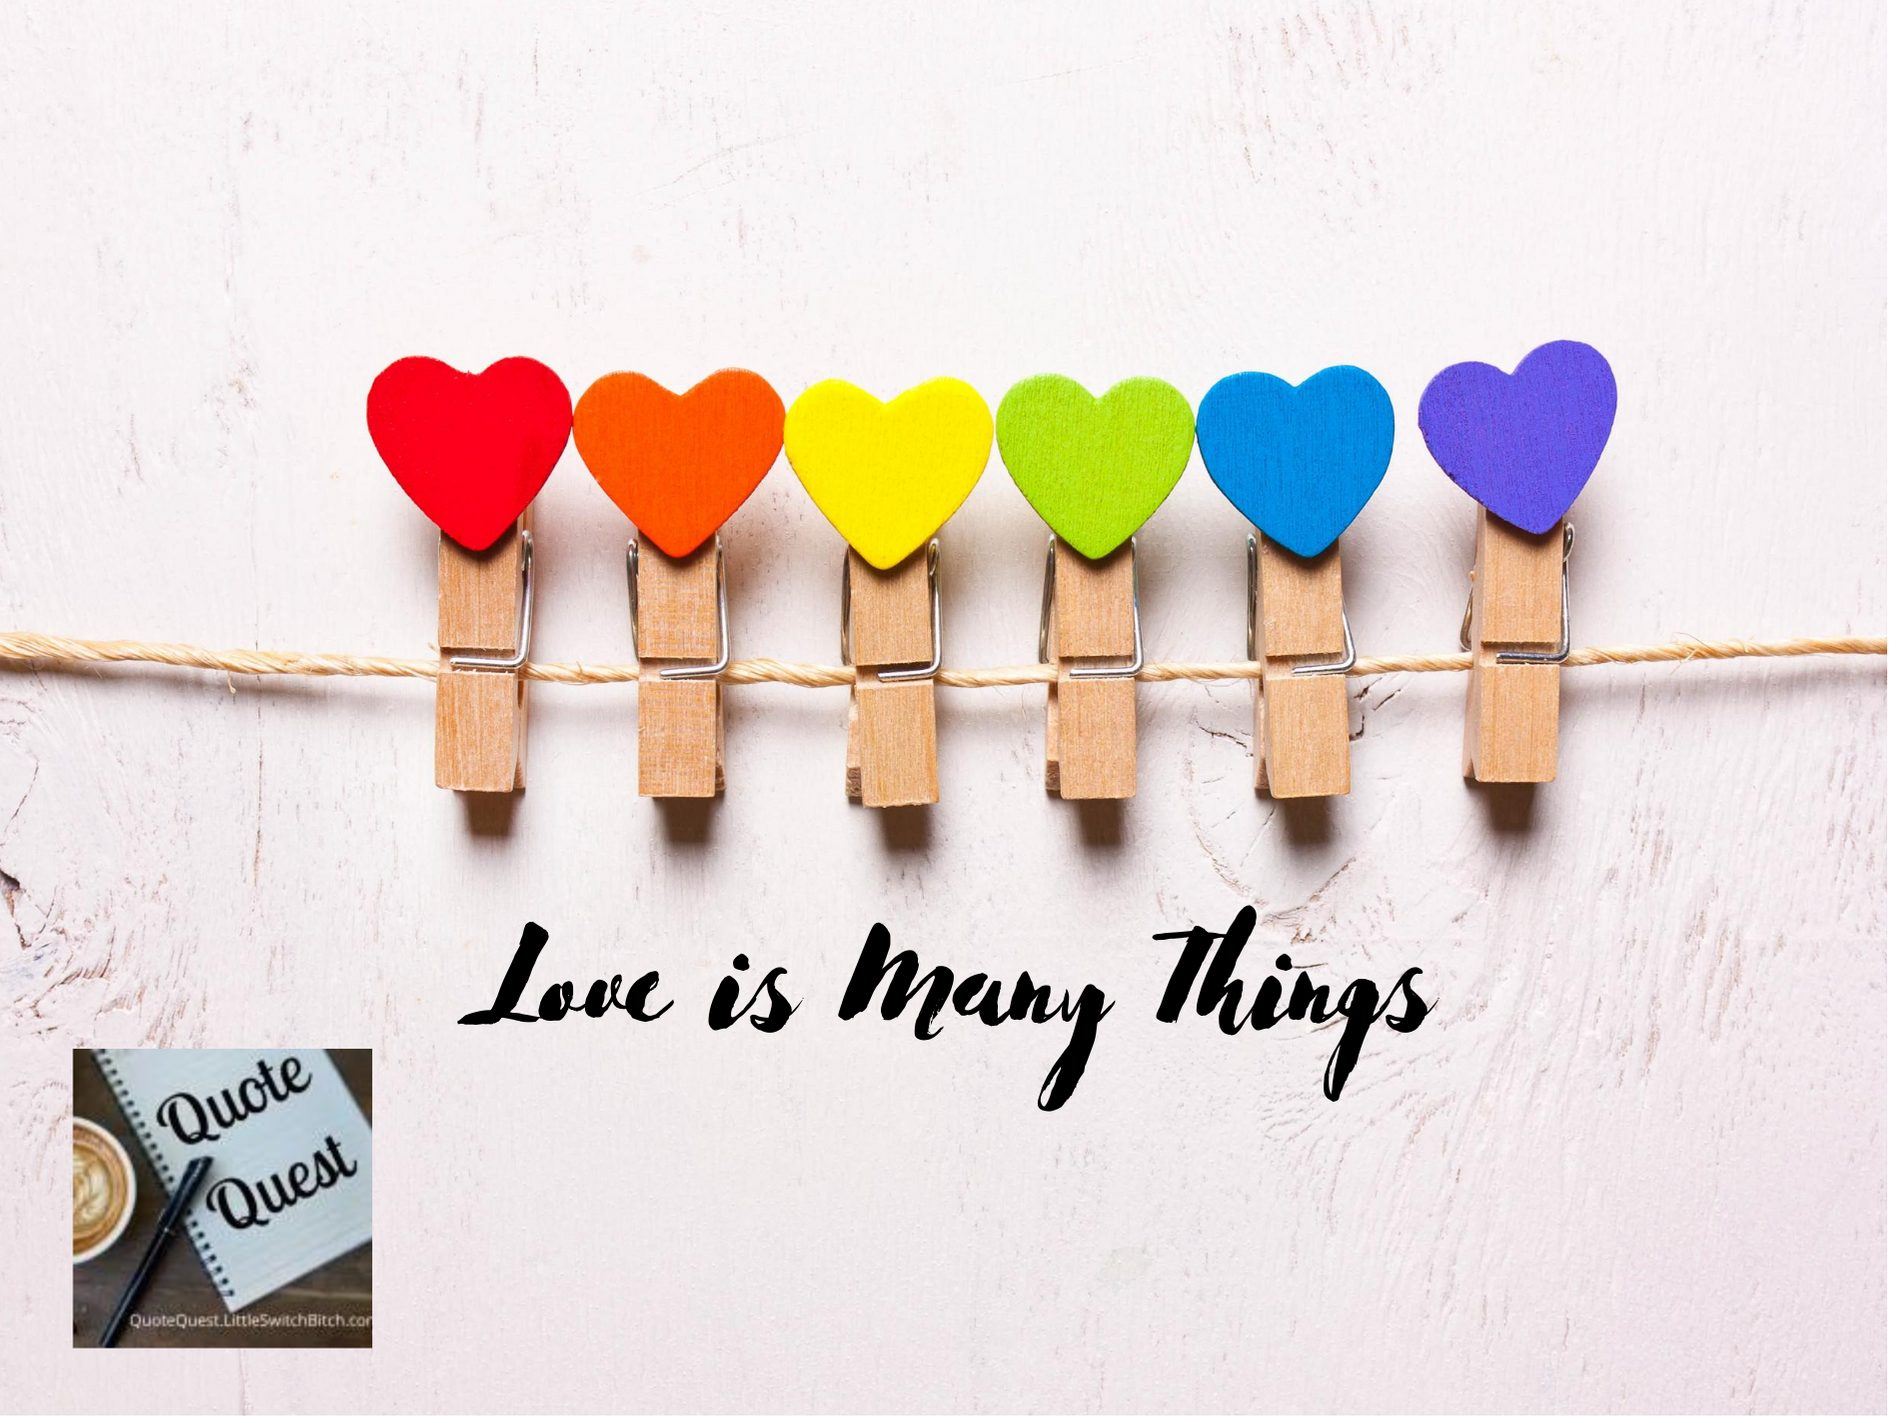 [Quote Quest] Love is Many Things